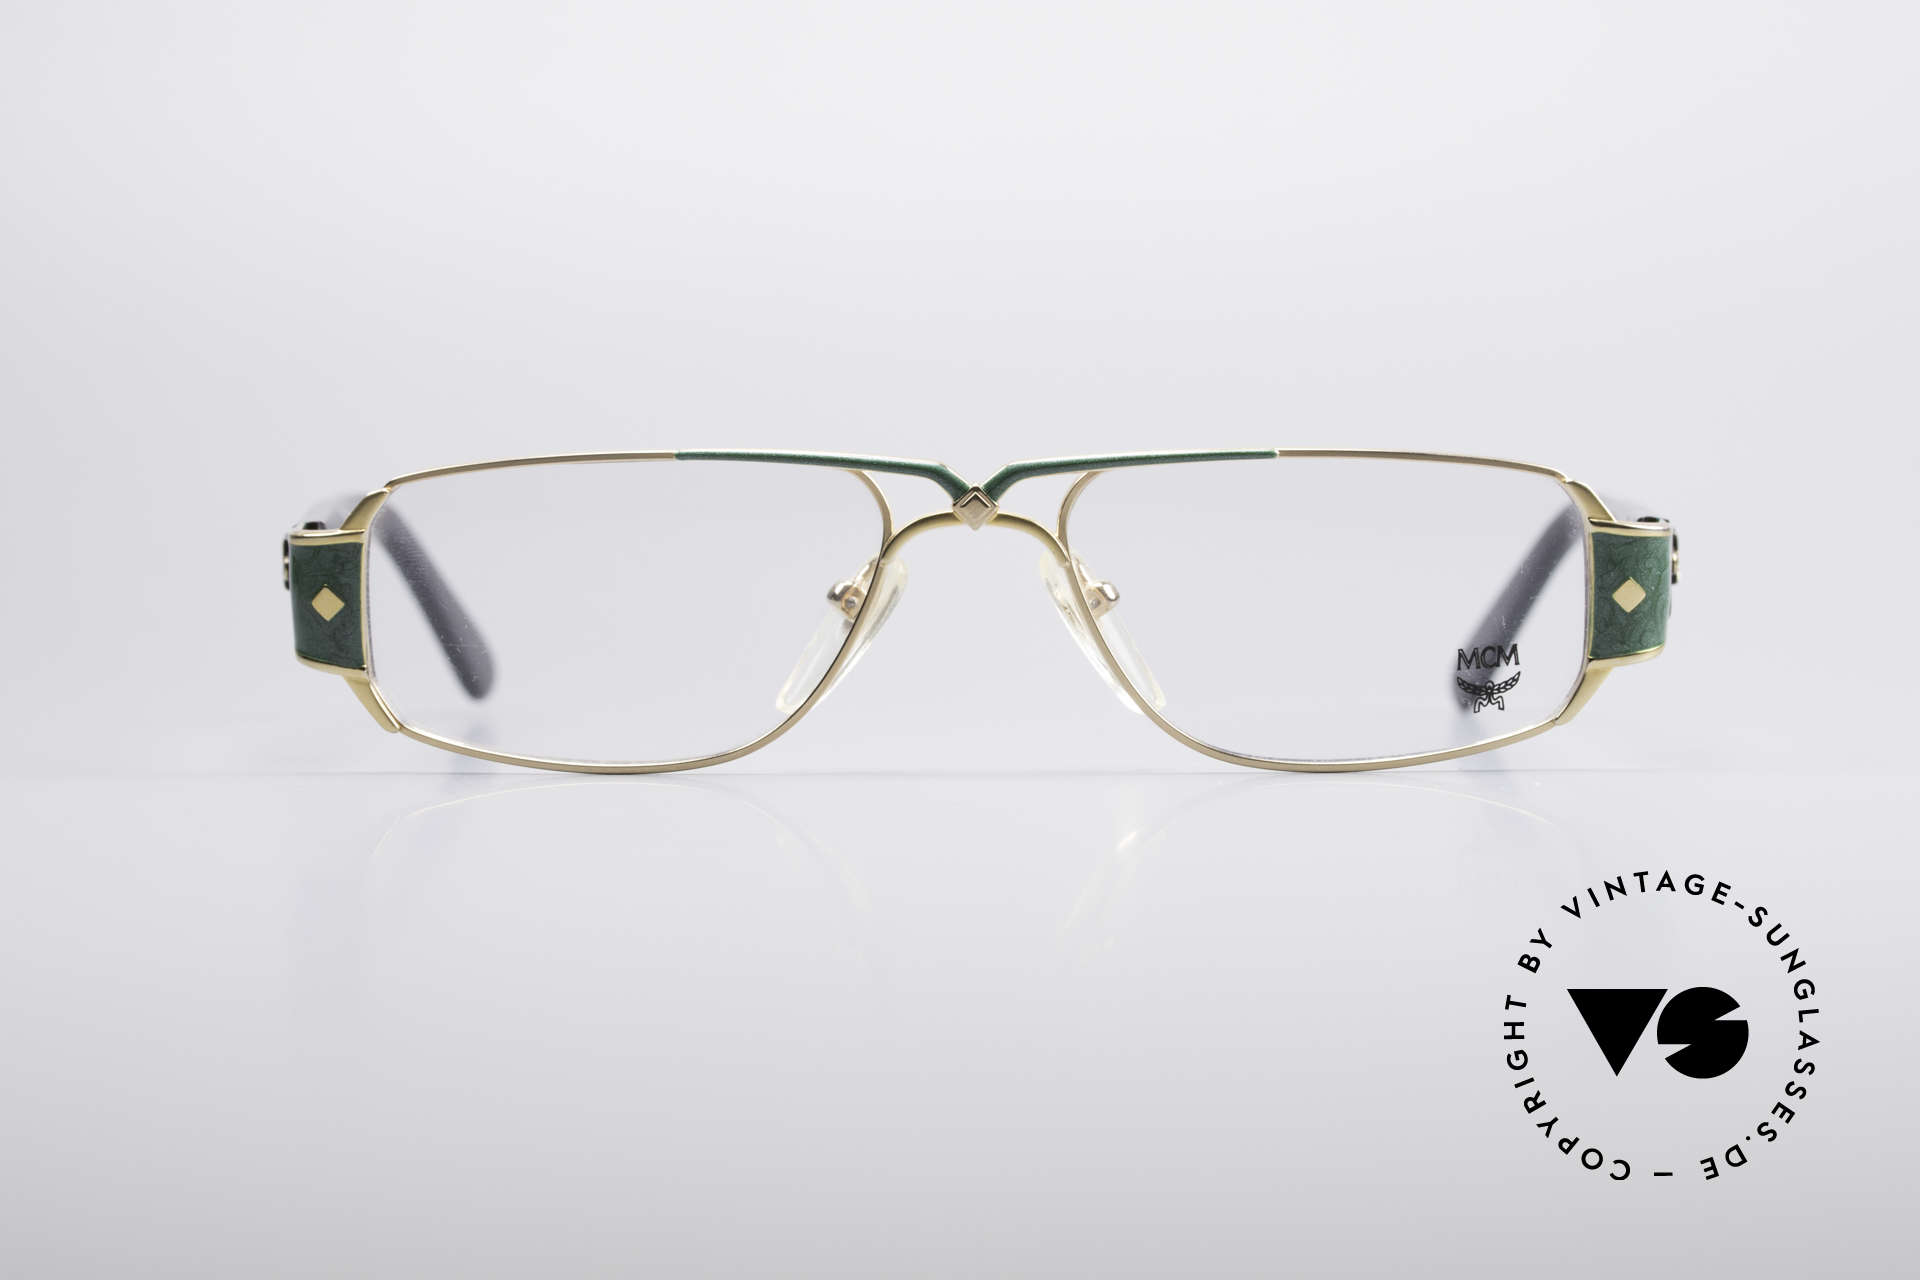 b38f57c79b3 Glasses MCM München 7 Luxury Reading Glasses